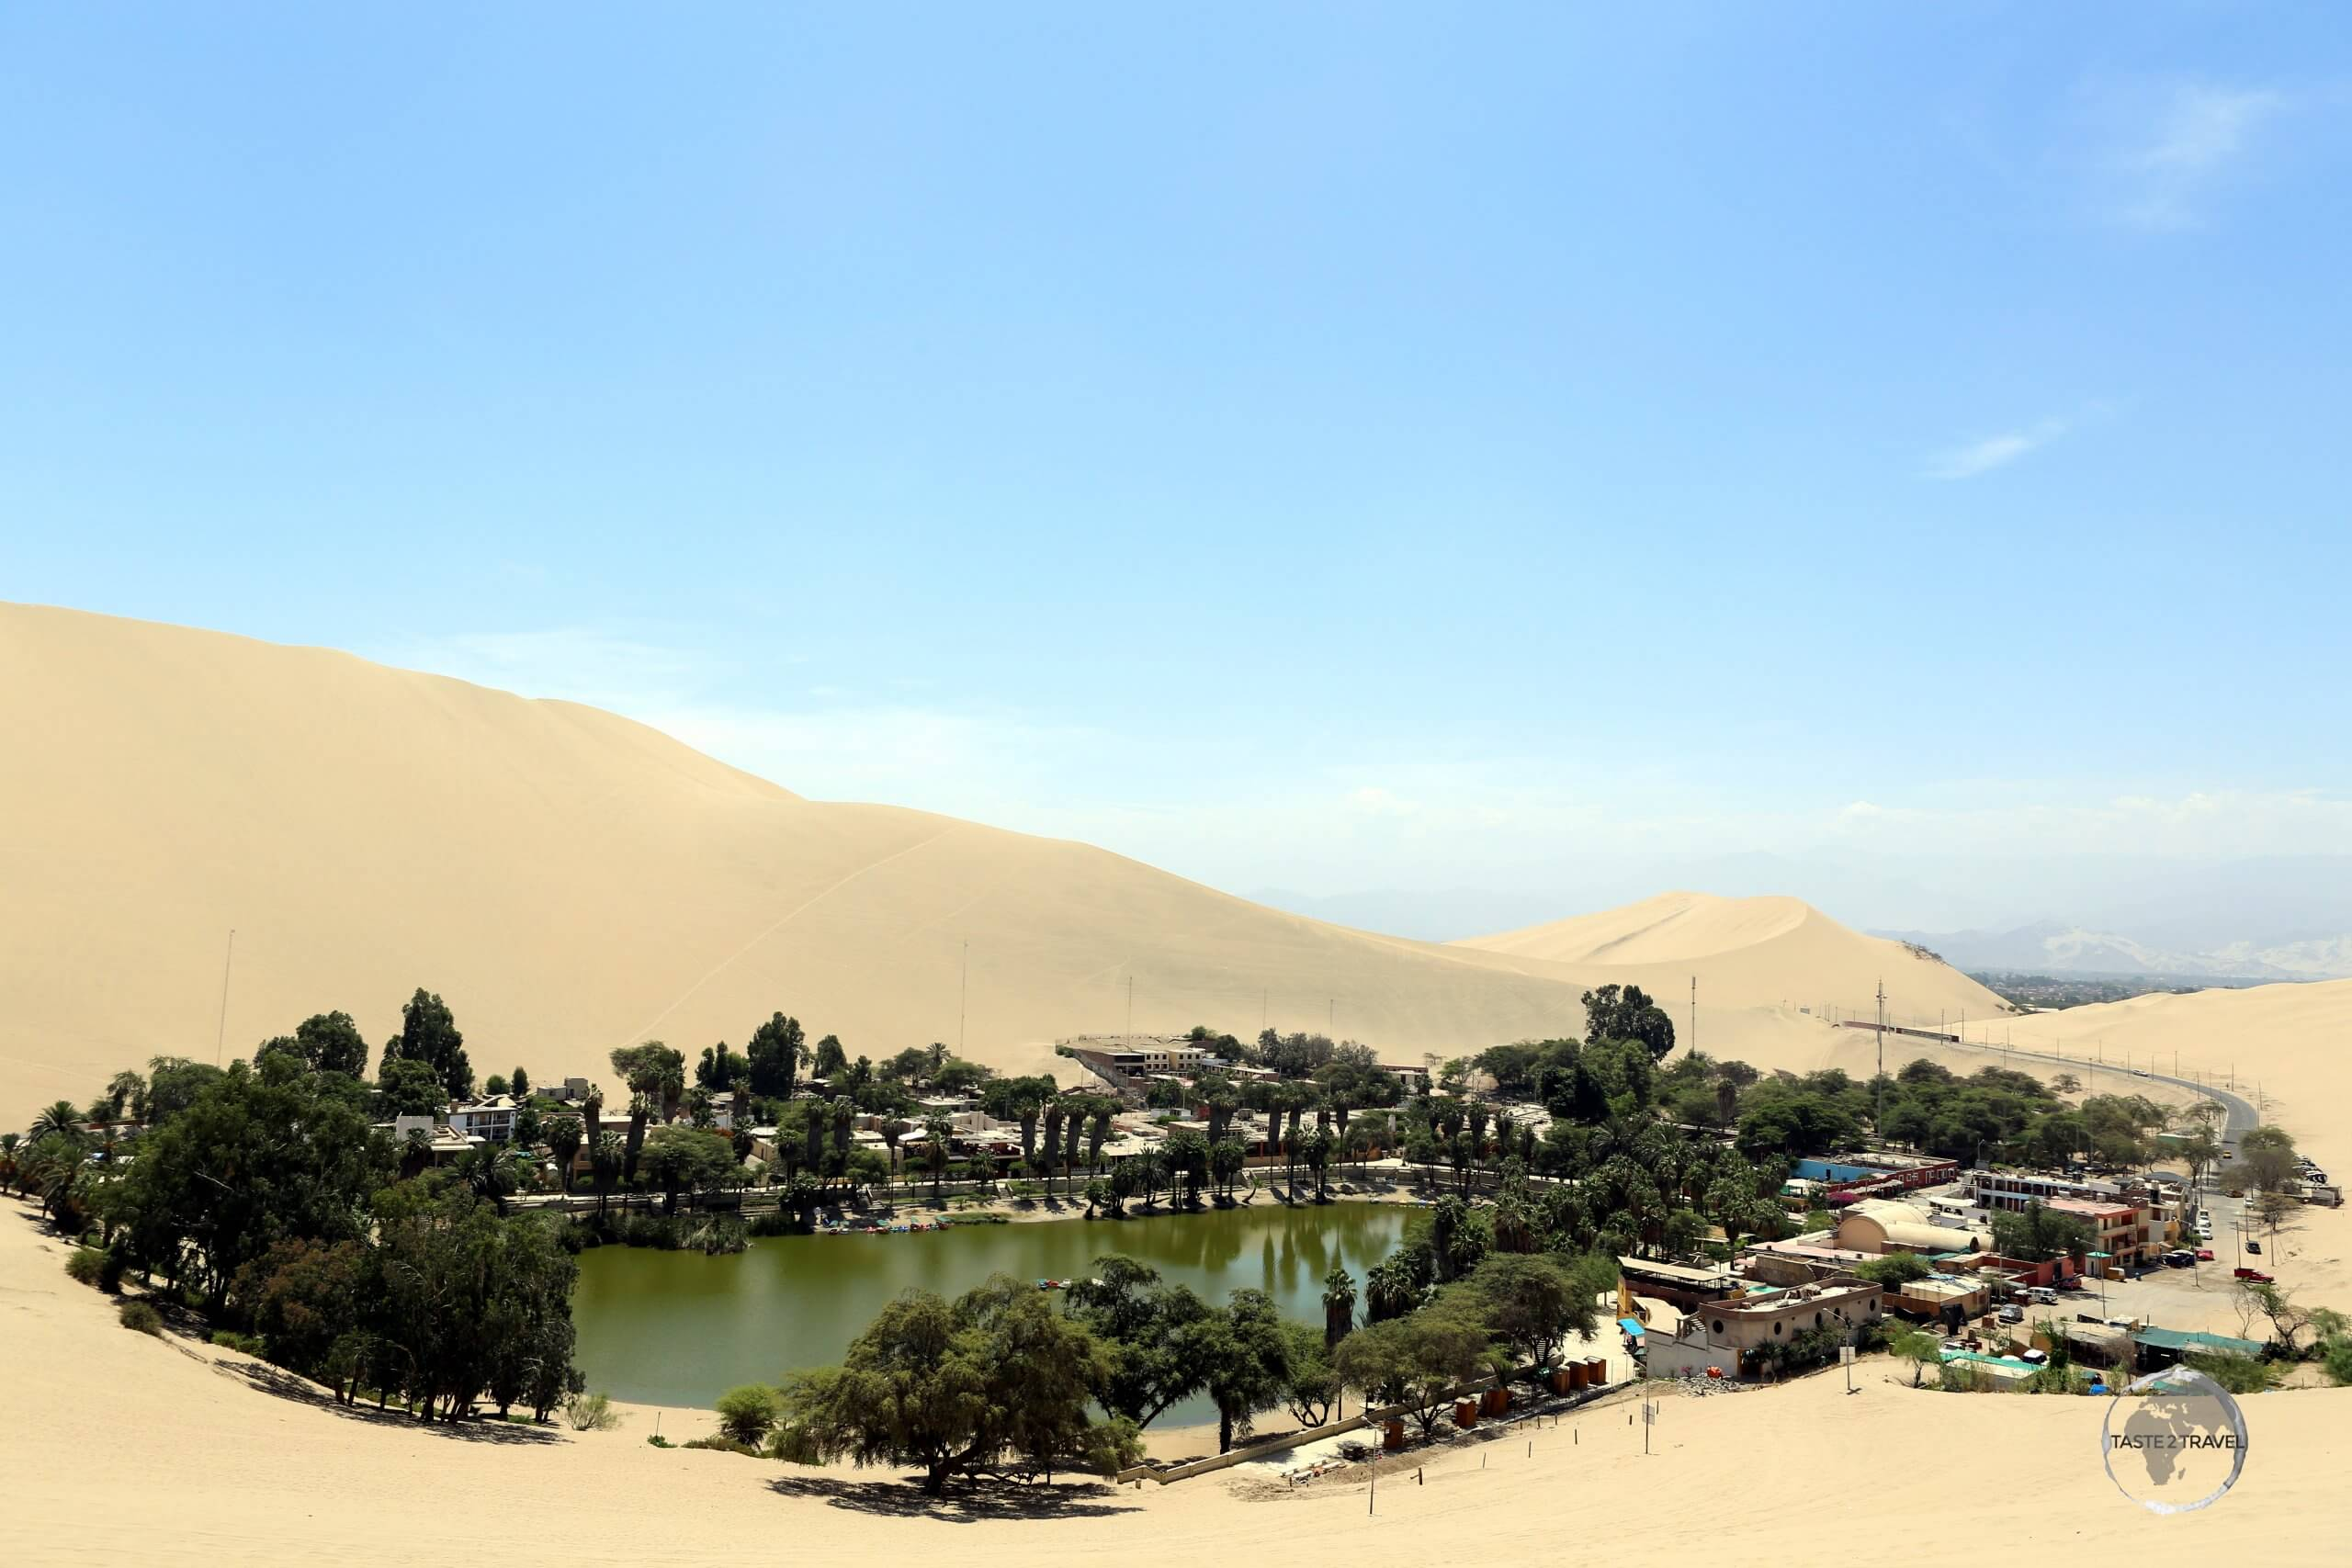 Located 5 km from the southern Peruvian city of Ica, Huacachina is a village built around a small oasis and surrounded by sand dunes.